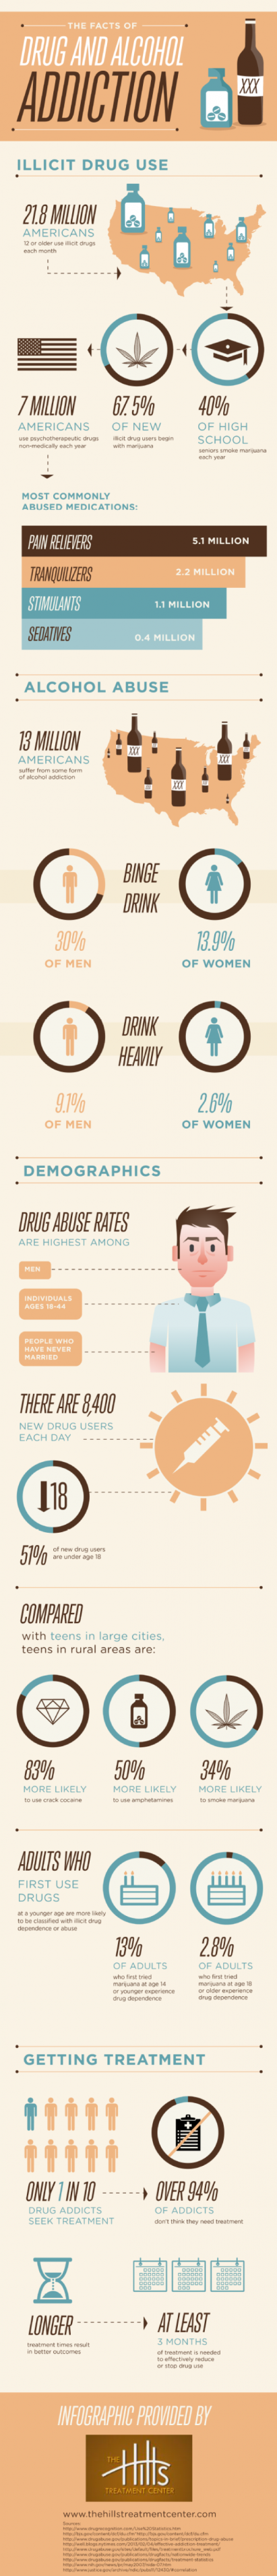 The facts on alcohol and drug abuse